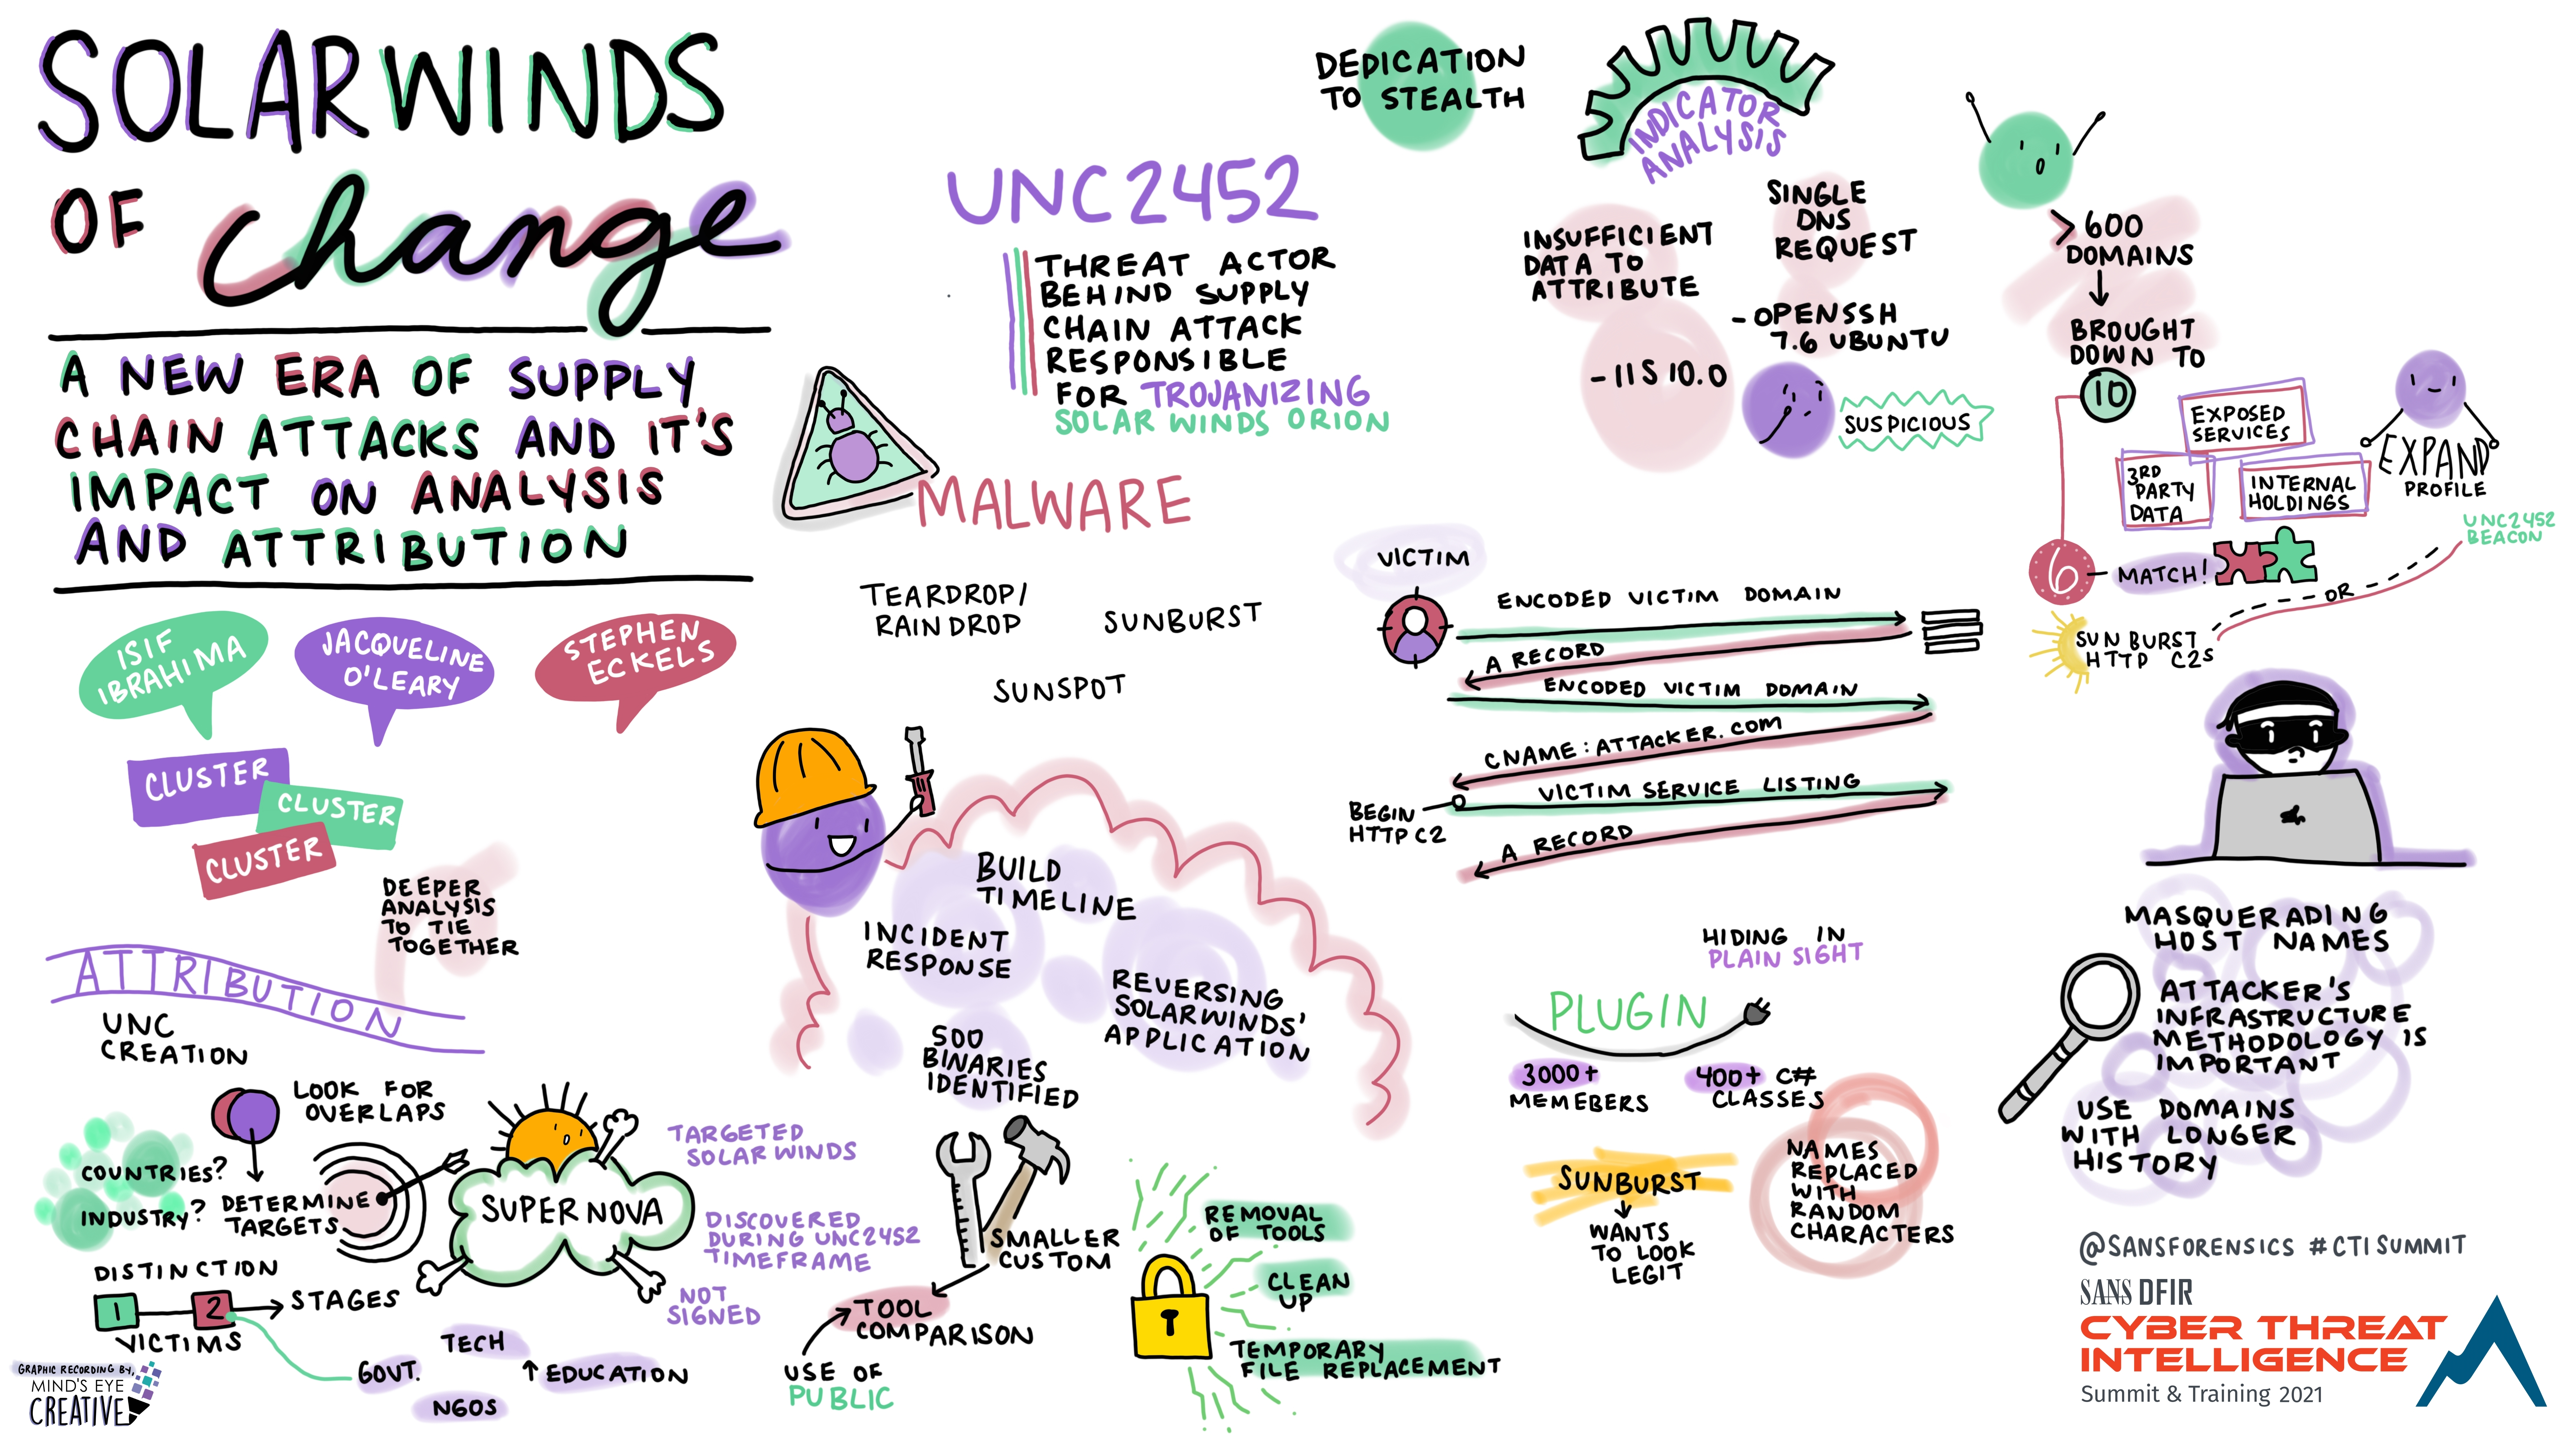 Keynote_-_Solar_Winds_of_Change_Stephen_Eckels_Isif_Ibrahima_Jacqueline_O_Leary_-_Graphic_Recording.jpg